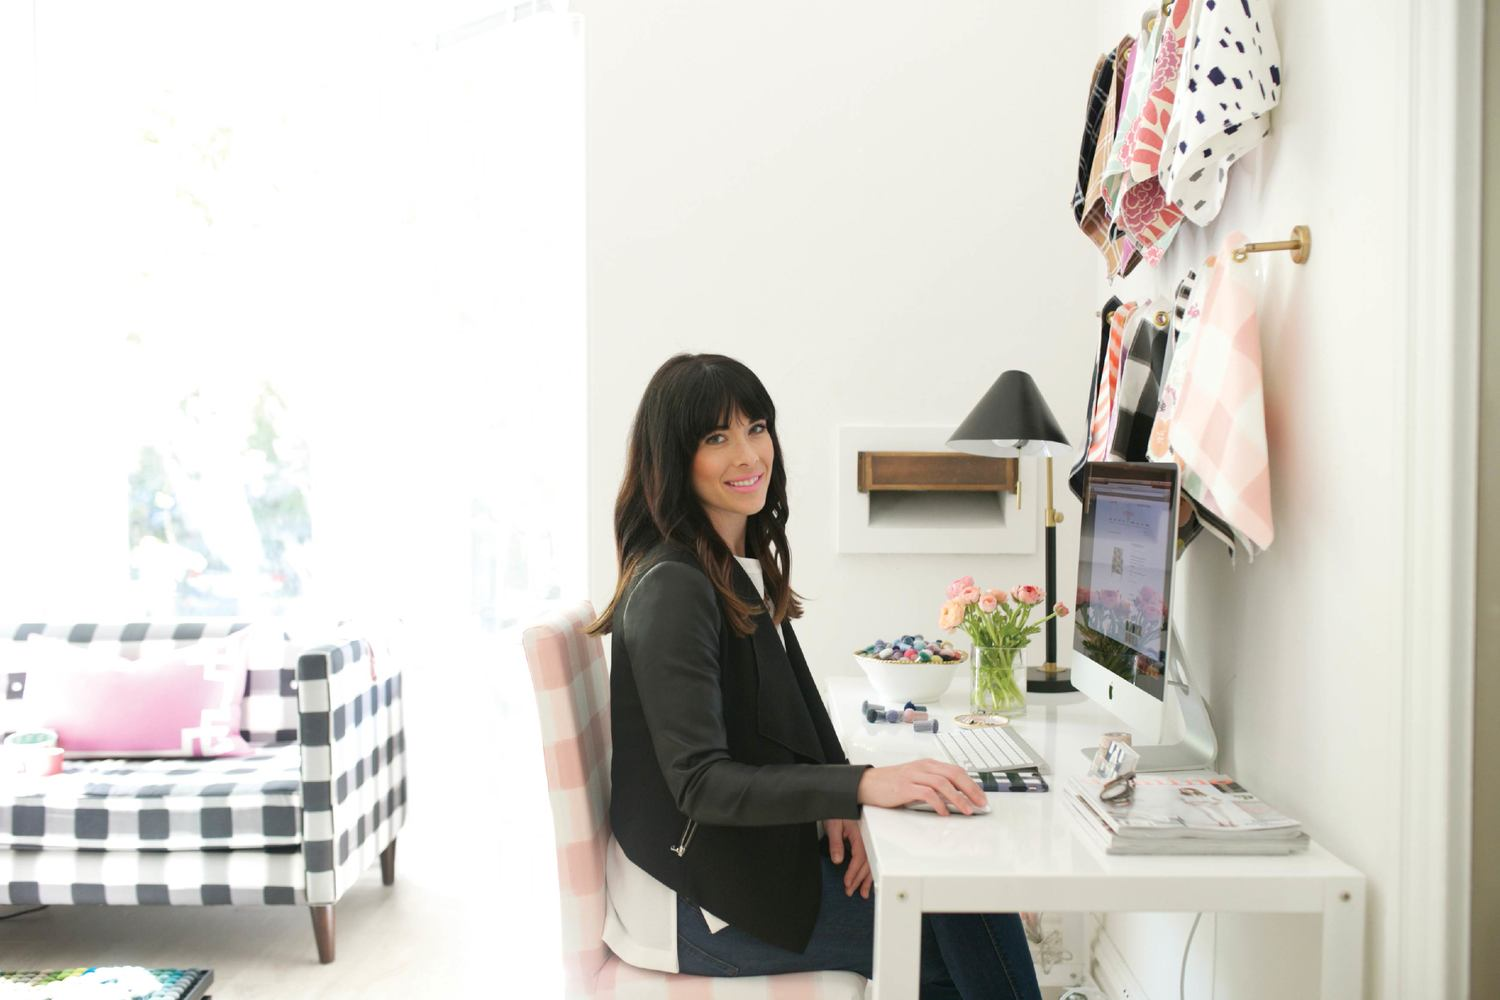 CAITLIN WILSON INTERVIEW — The School of Styling